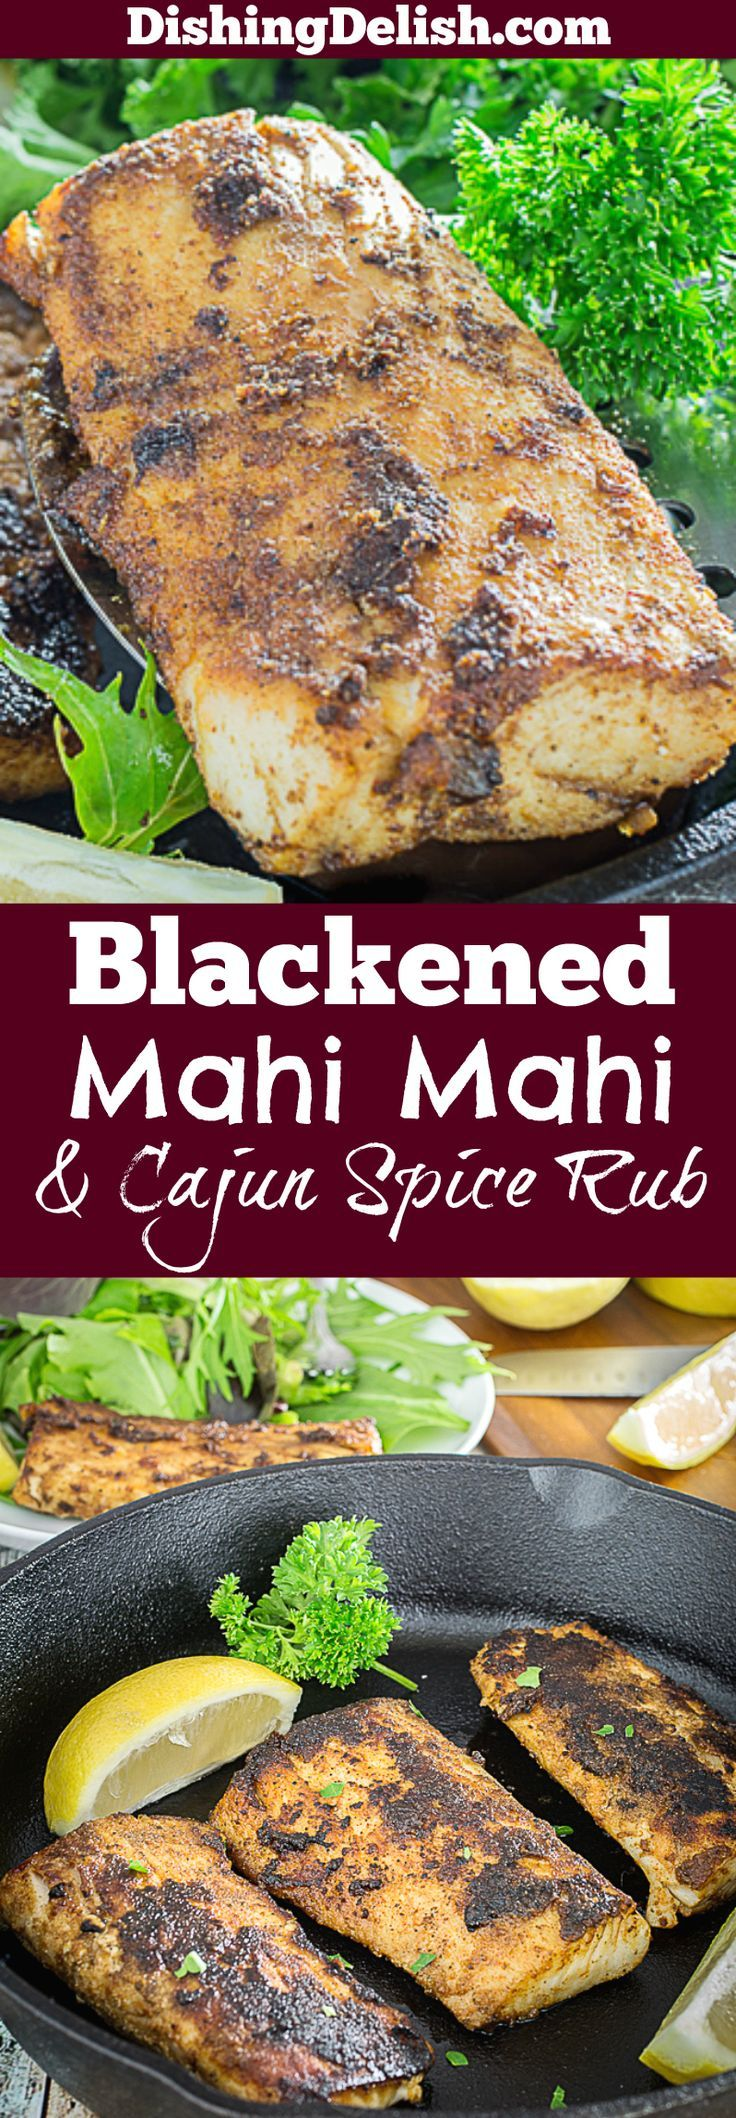 Blackened Mahi Mahi & Homemade Cajun Spice Rub is your favorite fish fillet coated in Cajun spices and pan seared to perfection. Paprika, garlic, cumin, cayenne pepper, and more combine to make the perfect flavor combination. This dish has spicy kick to it, and is perfect for pairing with a salad or even in a fish taco.